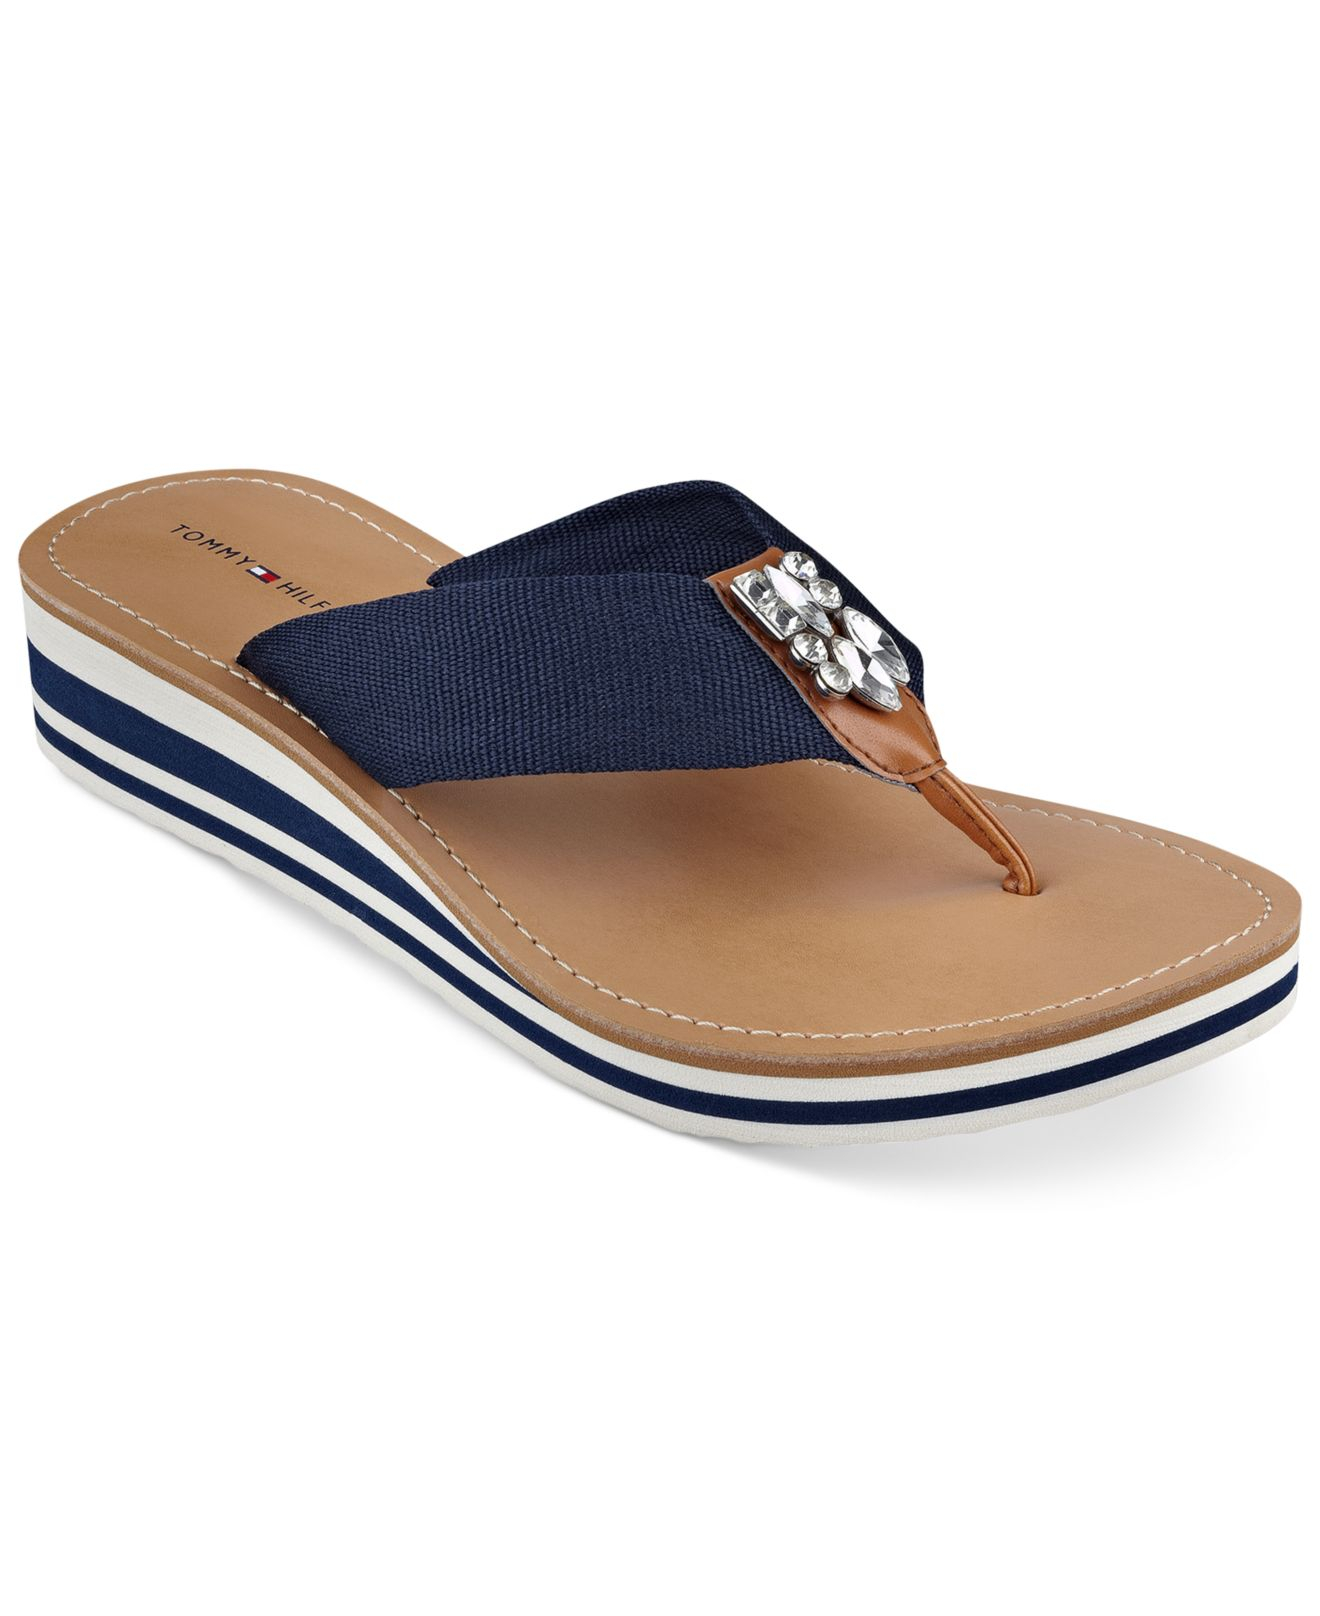 36a8352c7b6 Lyst - Tommy Hilfiger Roxanne Wedge Thong Sandals in Blue